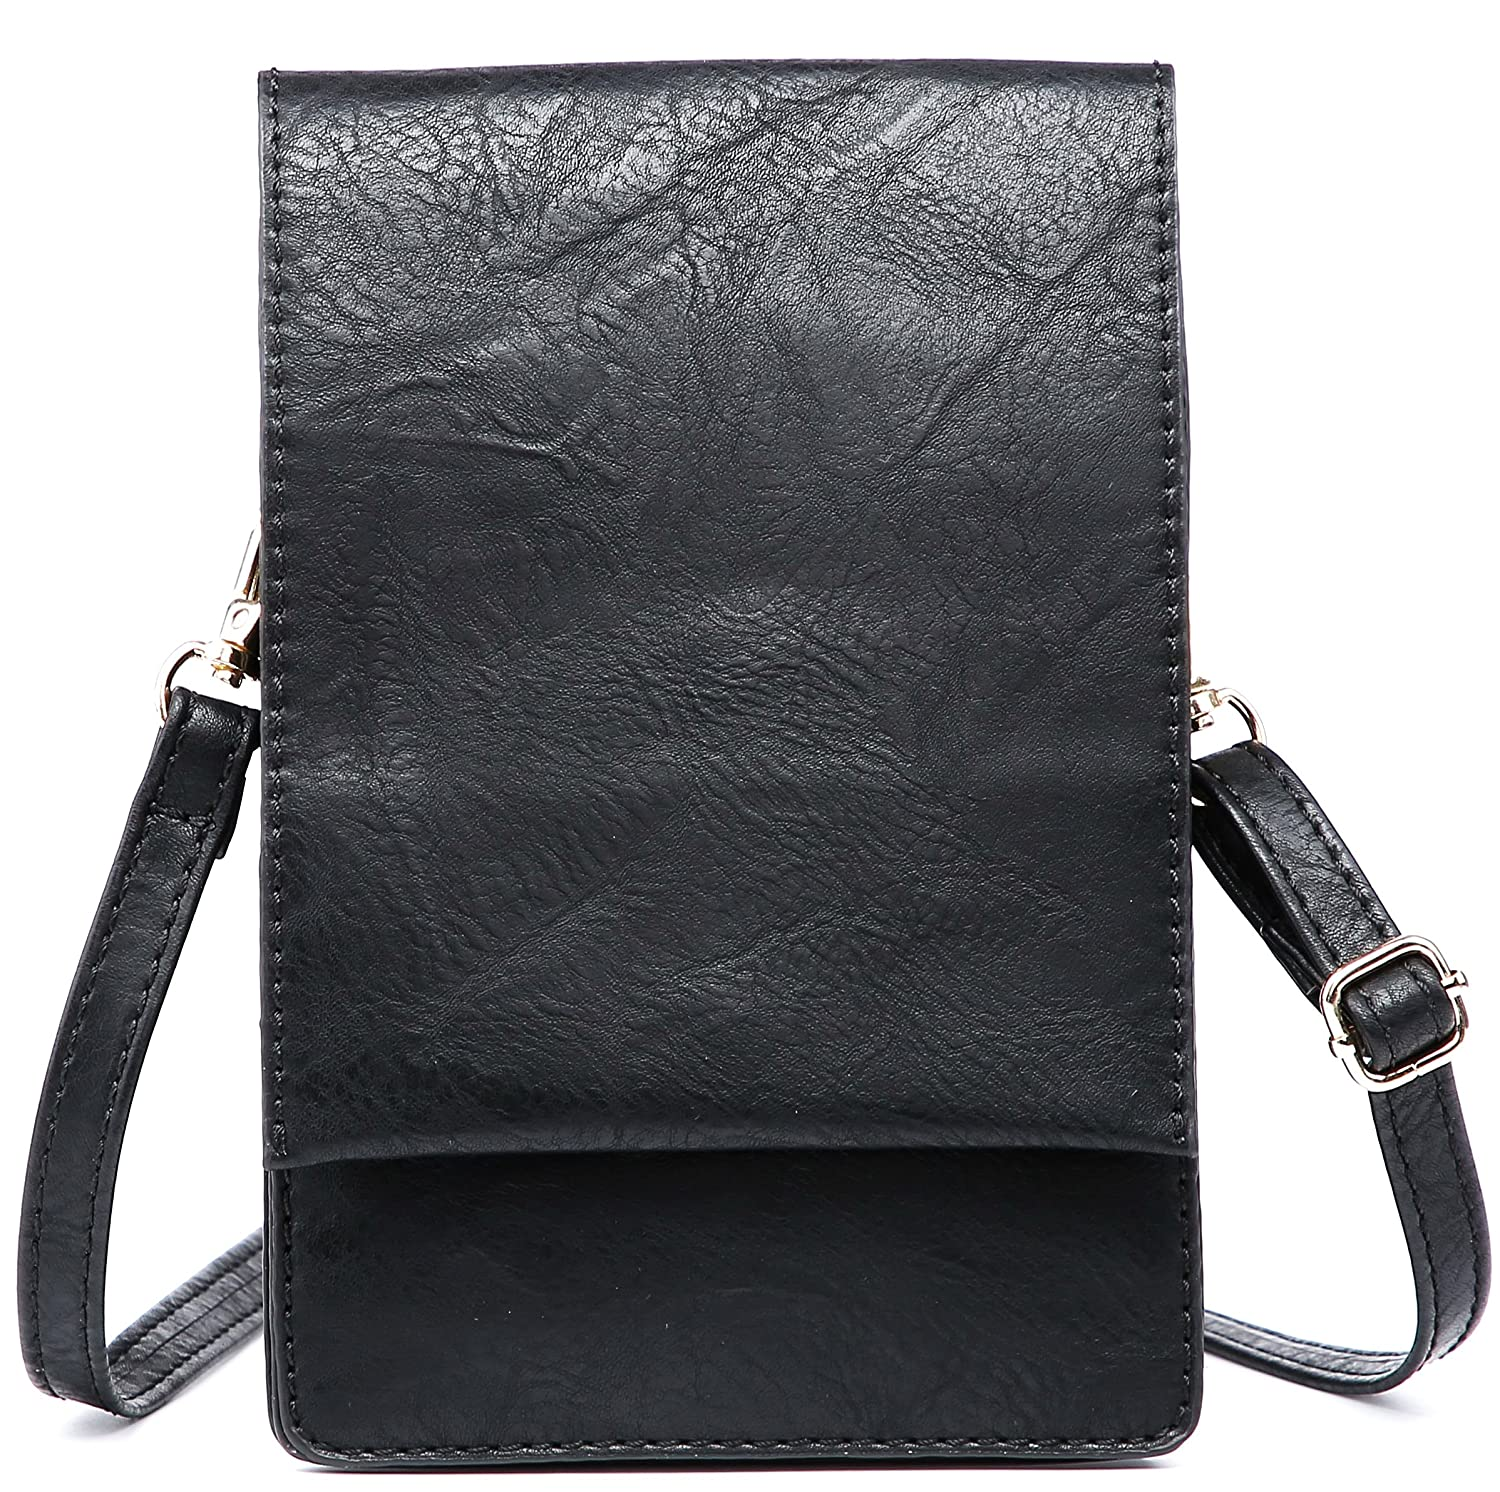 Shomico Women Small Crossbody Purse Cell Phone Pouch Wallet Shoulder Bag For 6 Inches by Shomico